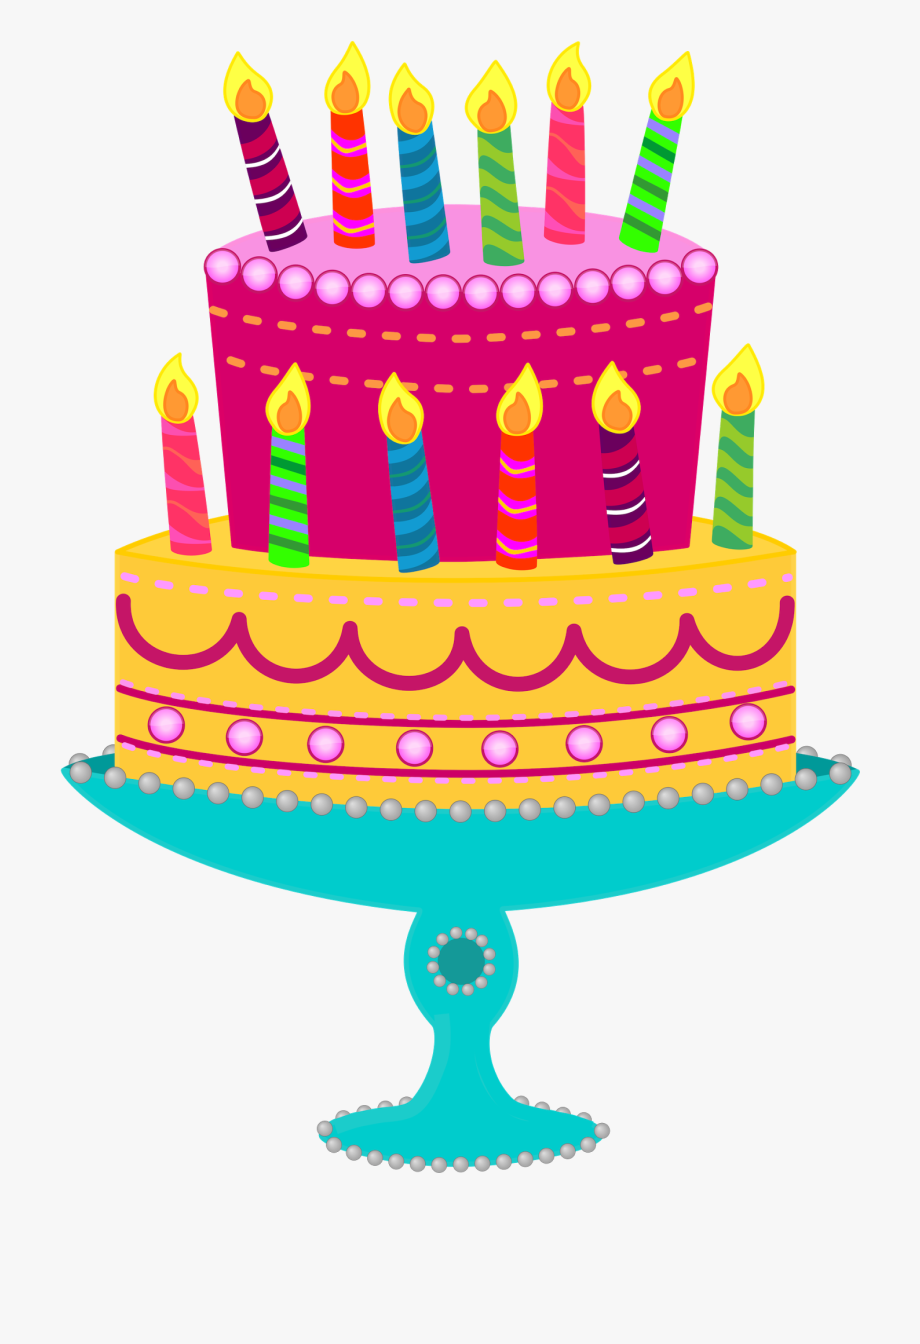 Awesome Simple Free Cake Images Birthday Cake Clip Art Transparent Funny Birthday Cards Online Elaedamsfinfo